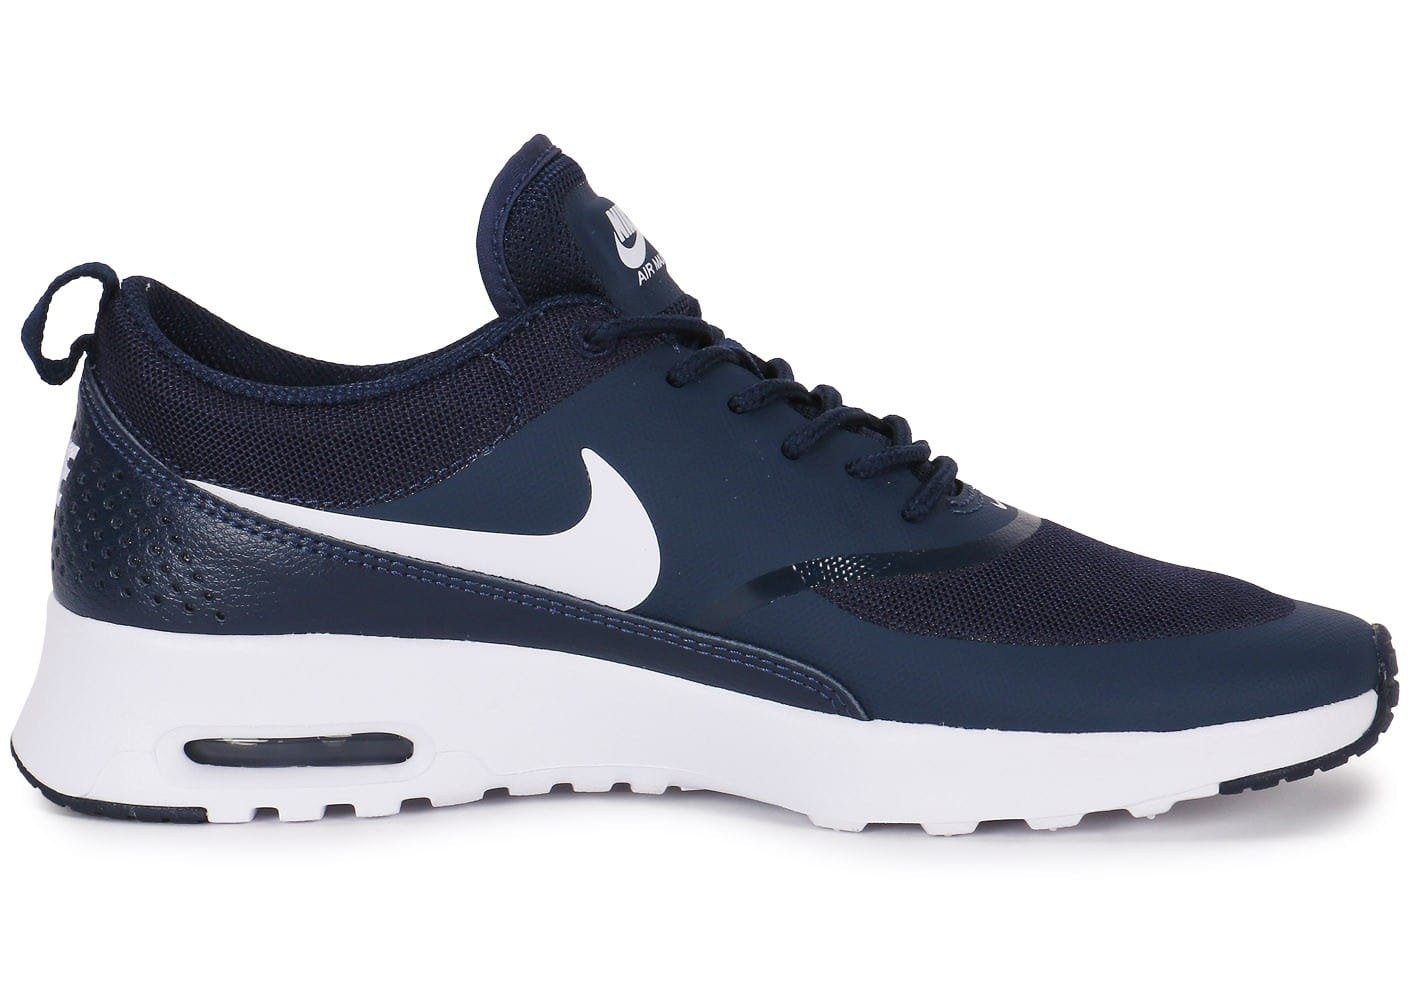 nike air max thea bleu marine chaussures chaussures. Black Bedroom Furniture Sets. Home Design Ideas